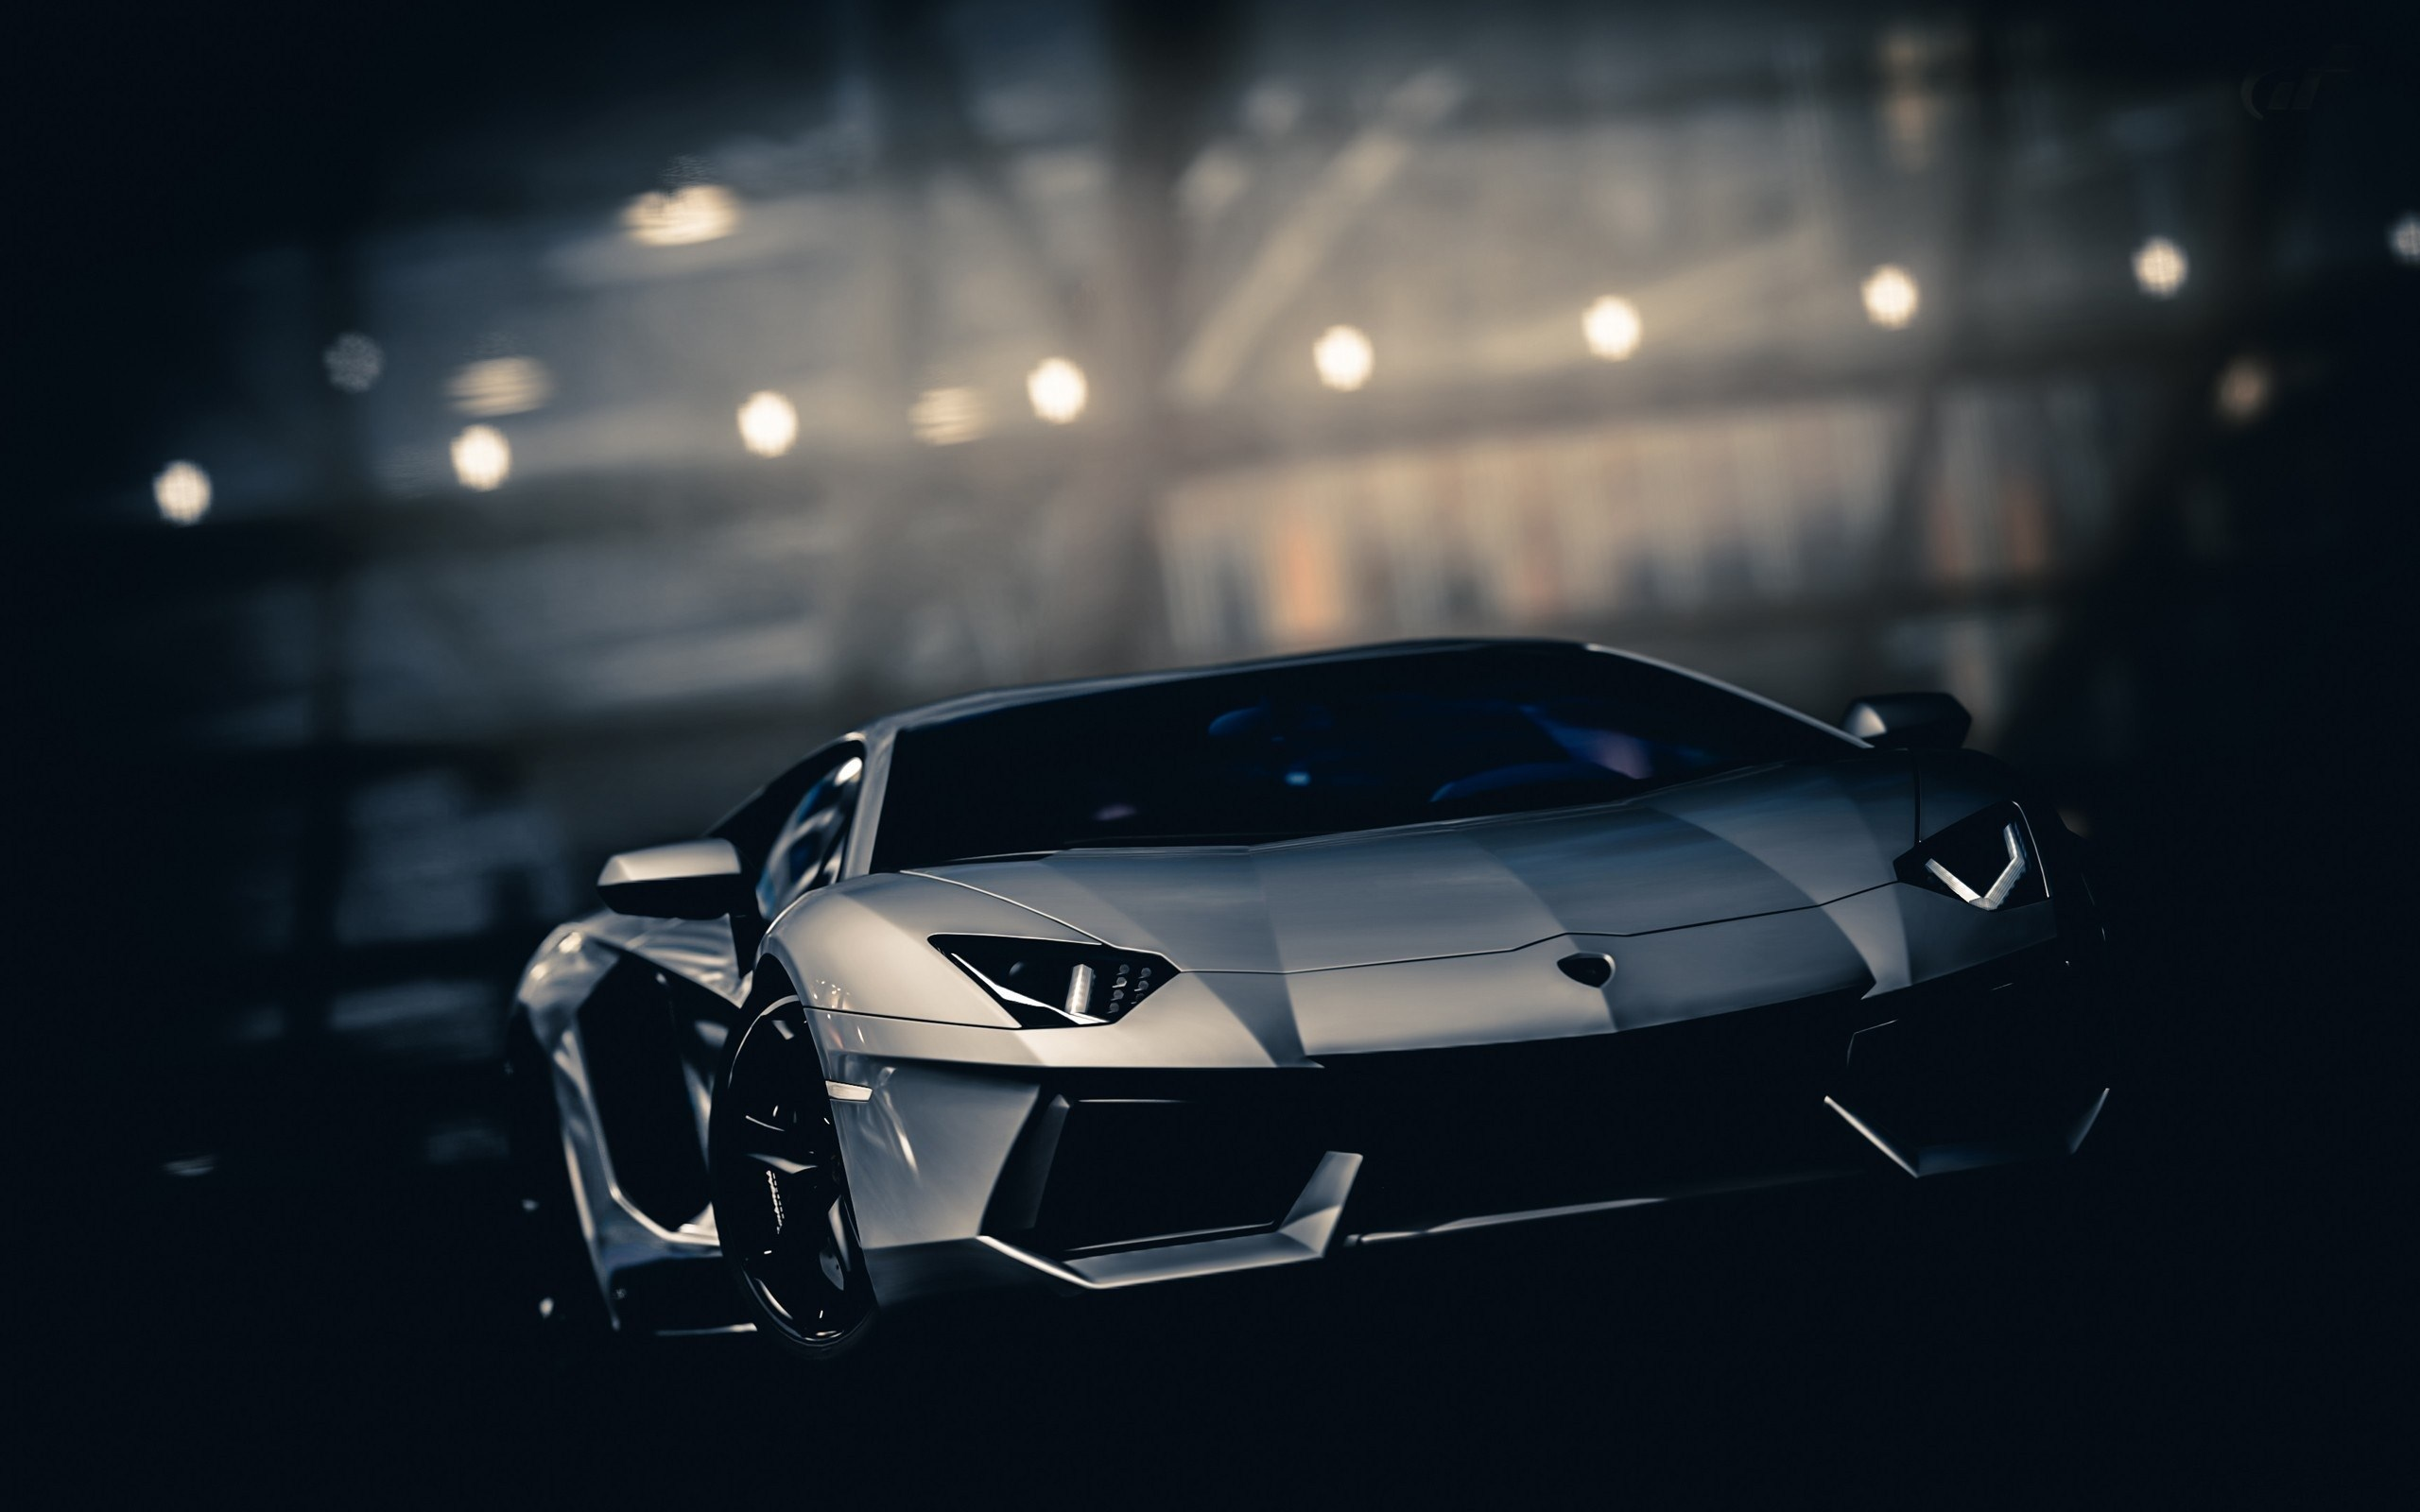 Free download 50 Super Sports Car Wallpapers Thatll Blow ...